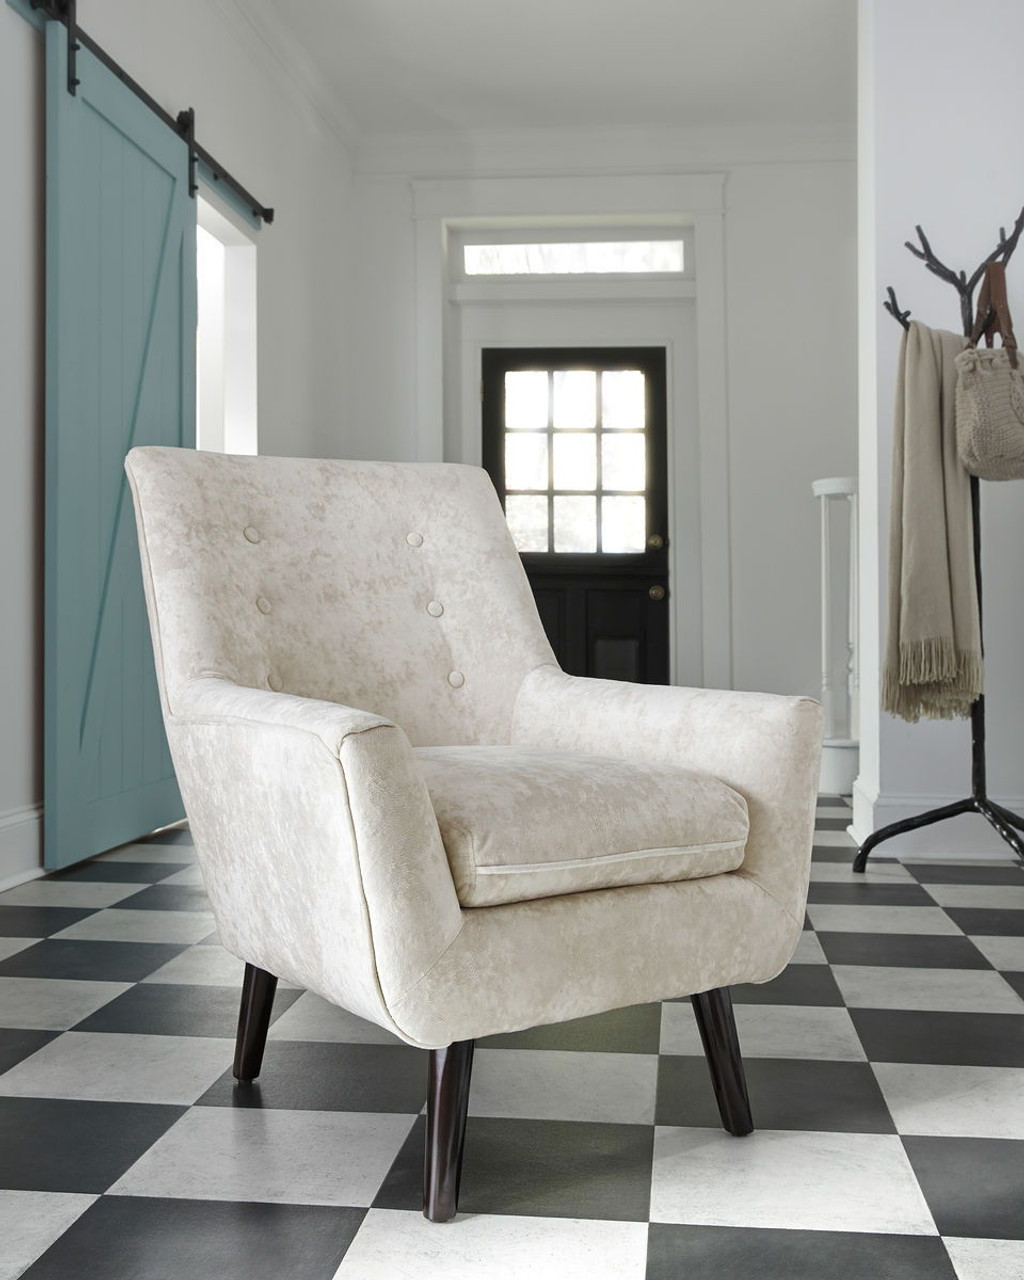 Rent A Center Accent Chairs.Zossen Ivory Accent Chair